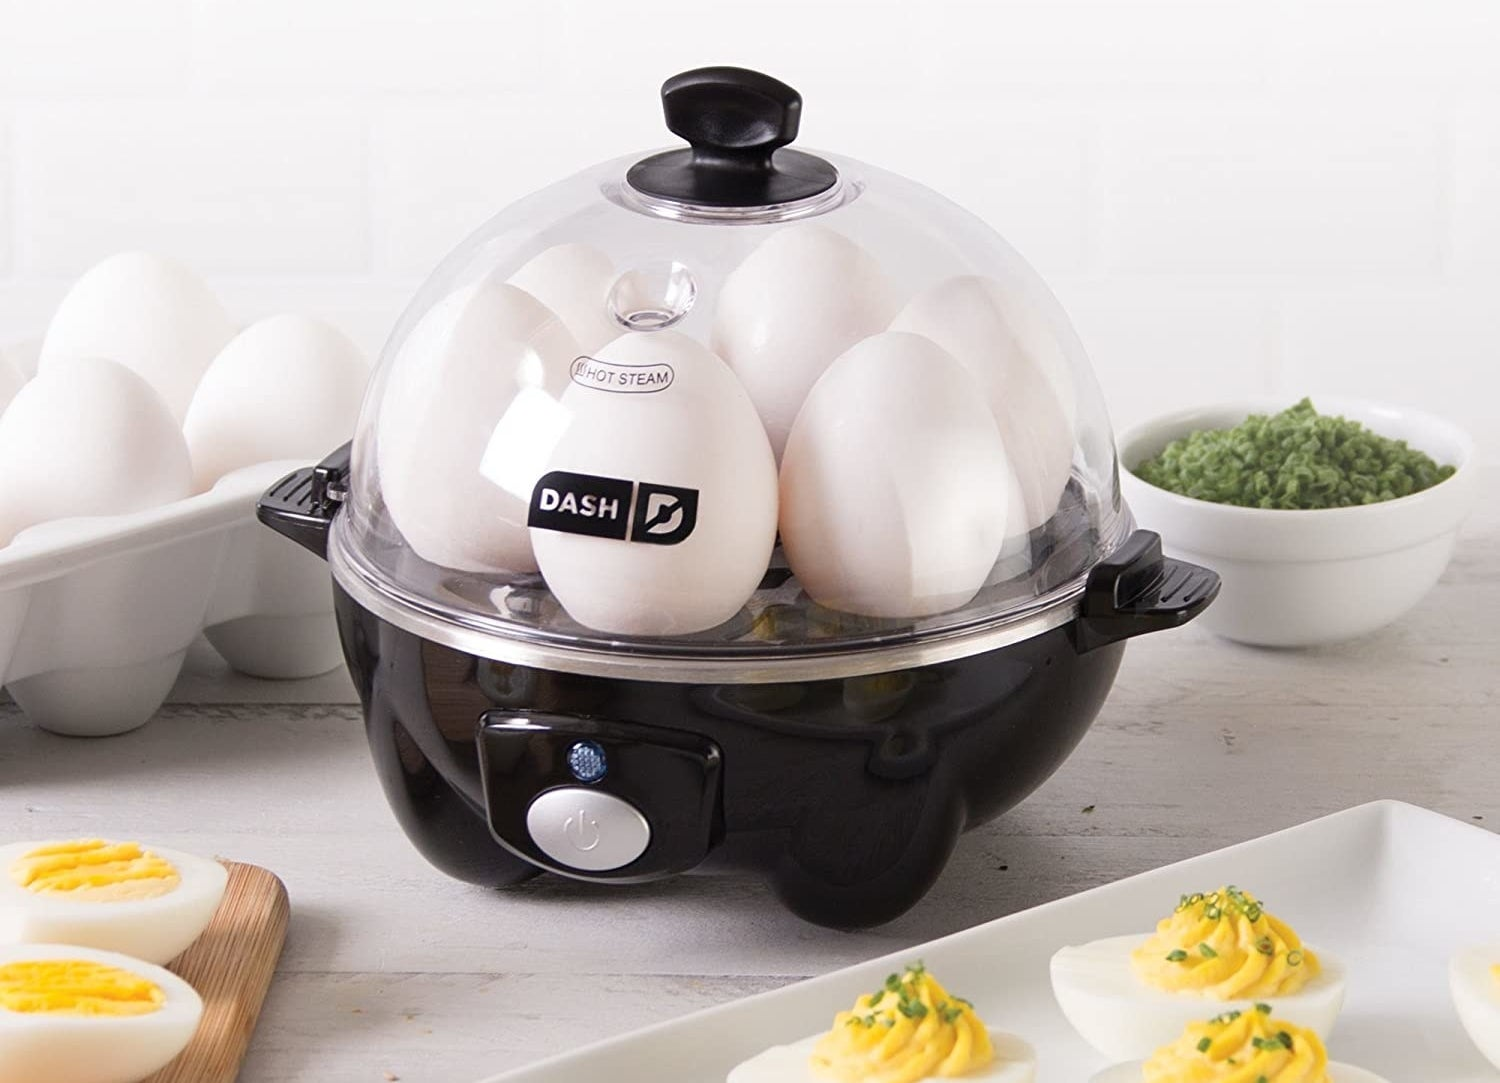 The egg cooker in black filled with six eggs